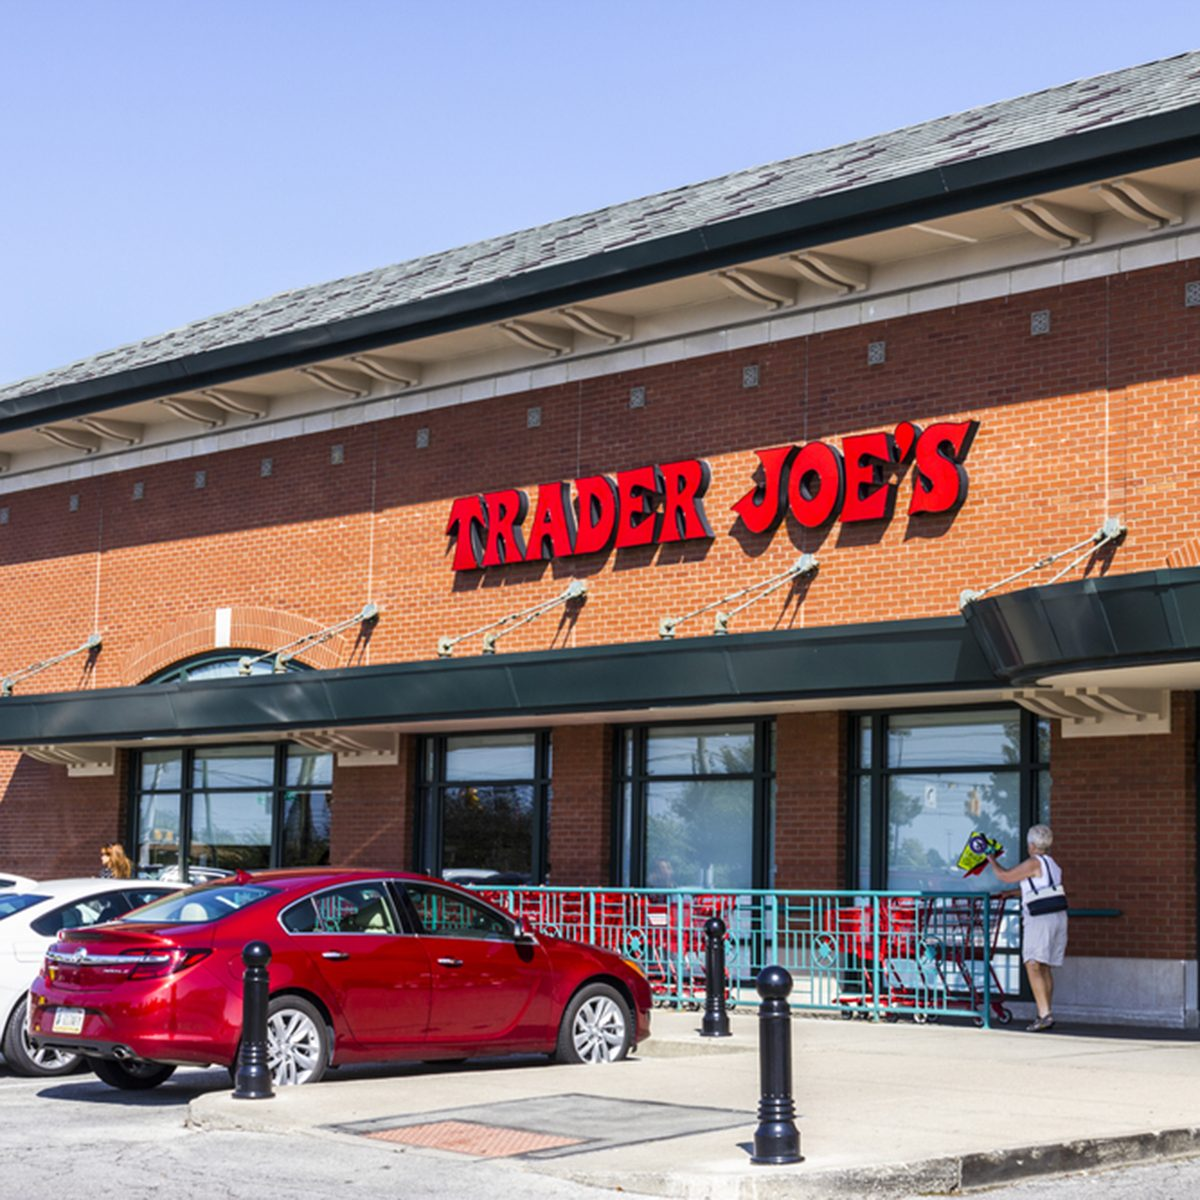 Indianapolis - Circa September 2016: Trader Joe's Retail Strip Mall Location. Trader Joe's is a chain of specialty grocery stores in the U.S. I; Shutterstock ID 485085724; Job (TFH, TOH, RD, BNB, CWM, CM): TOH